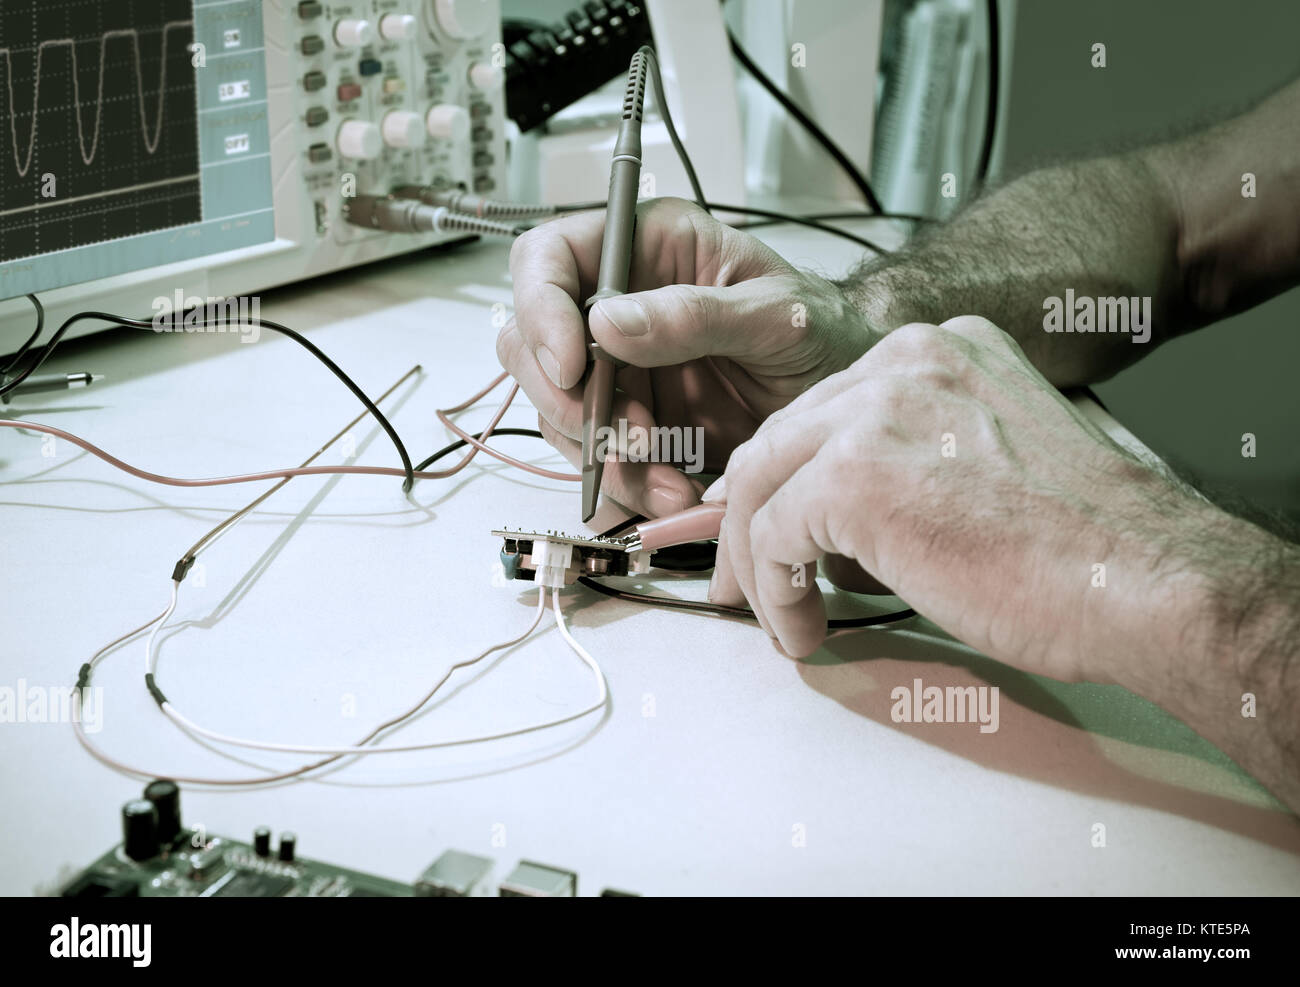 Testing Electrical Components Oscilloscope Stock Photos & Testing